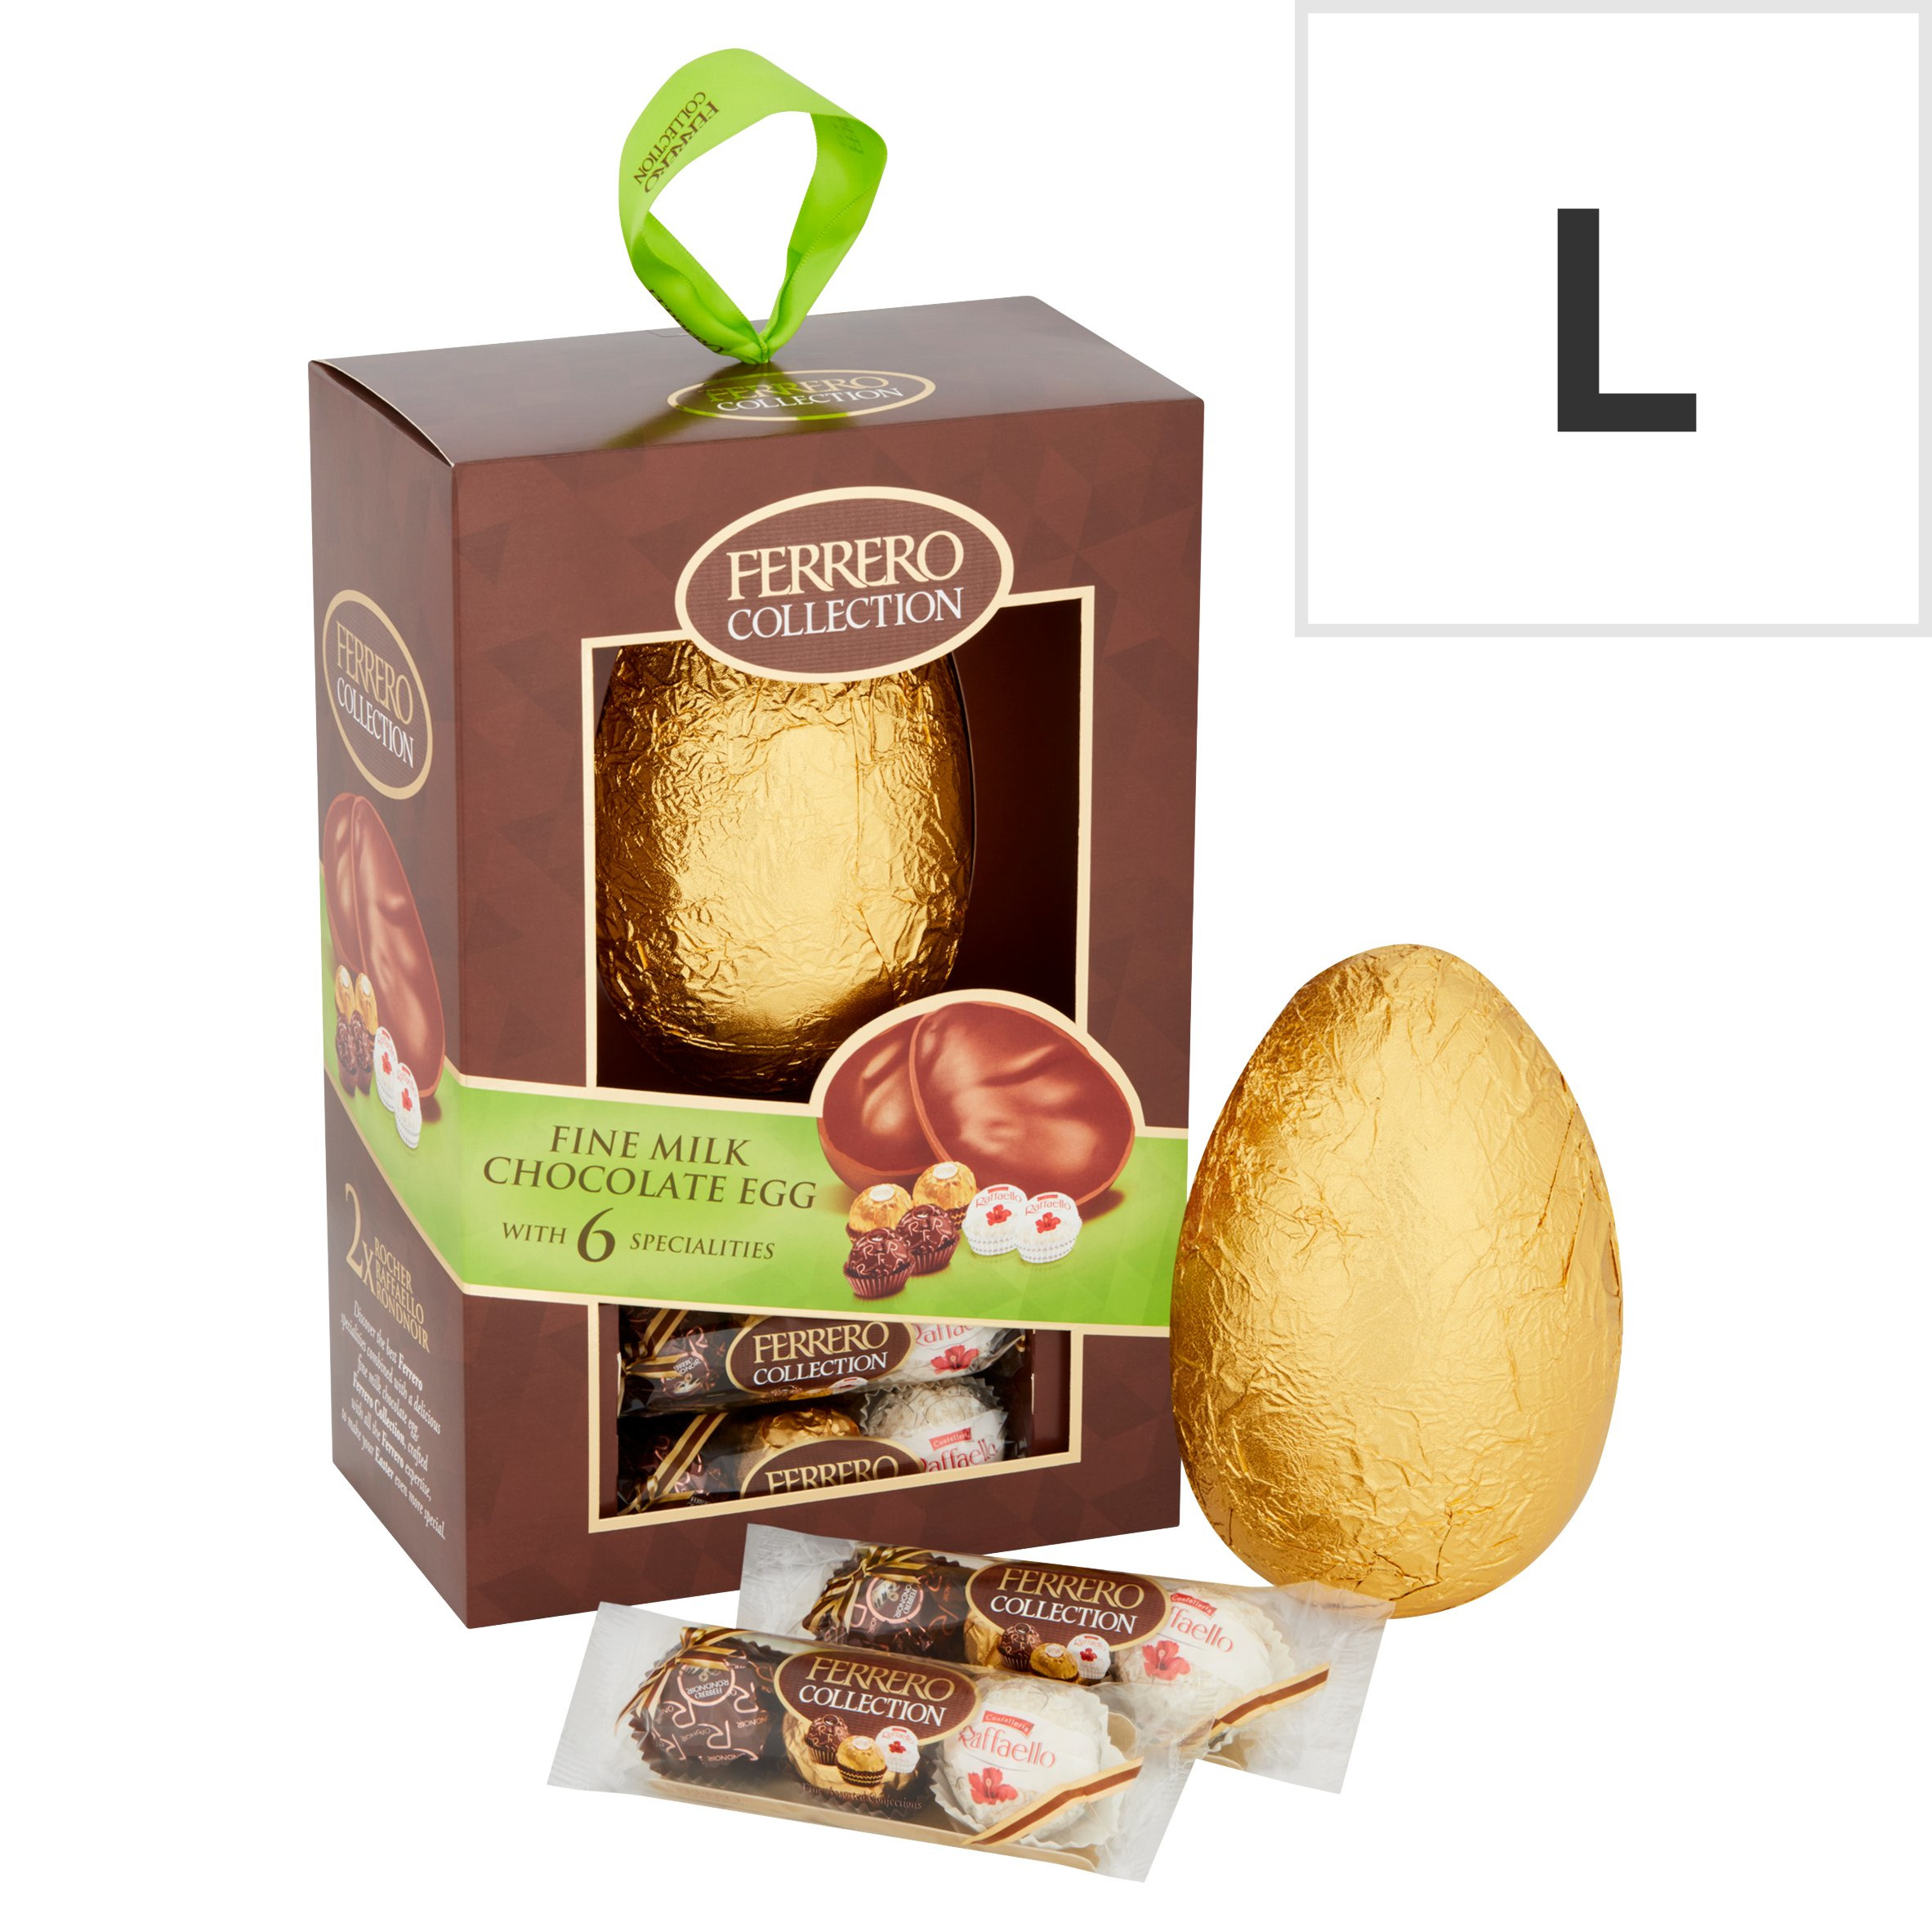 image 1 of Ferrero Collection Milk Chocolate Egg With 6 Specialities 239.8G